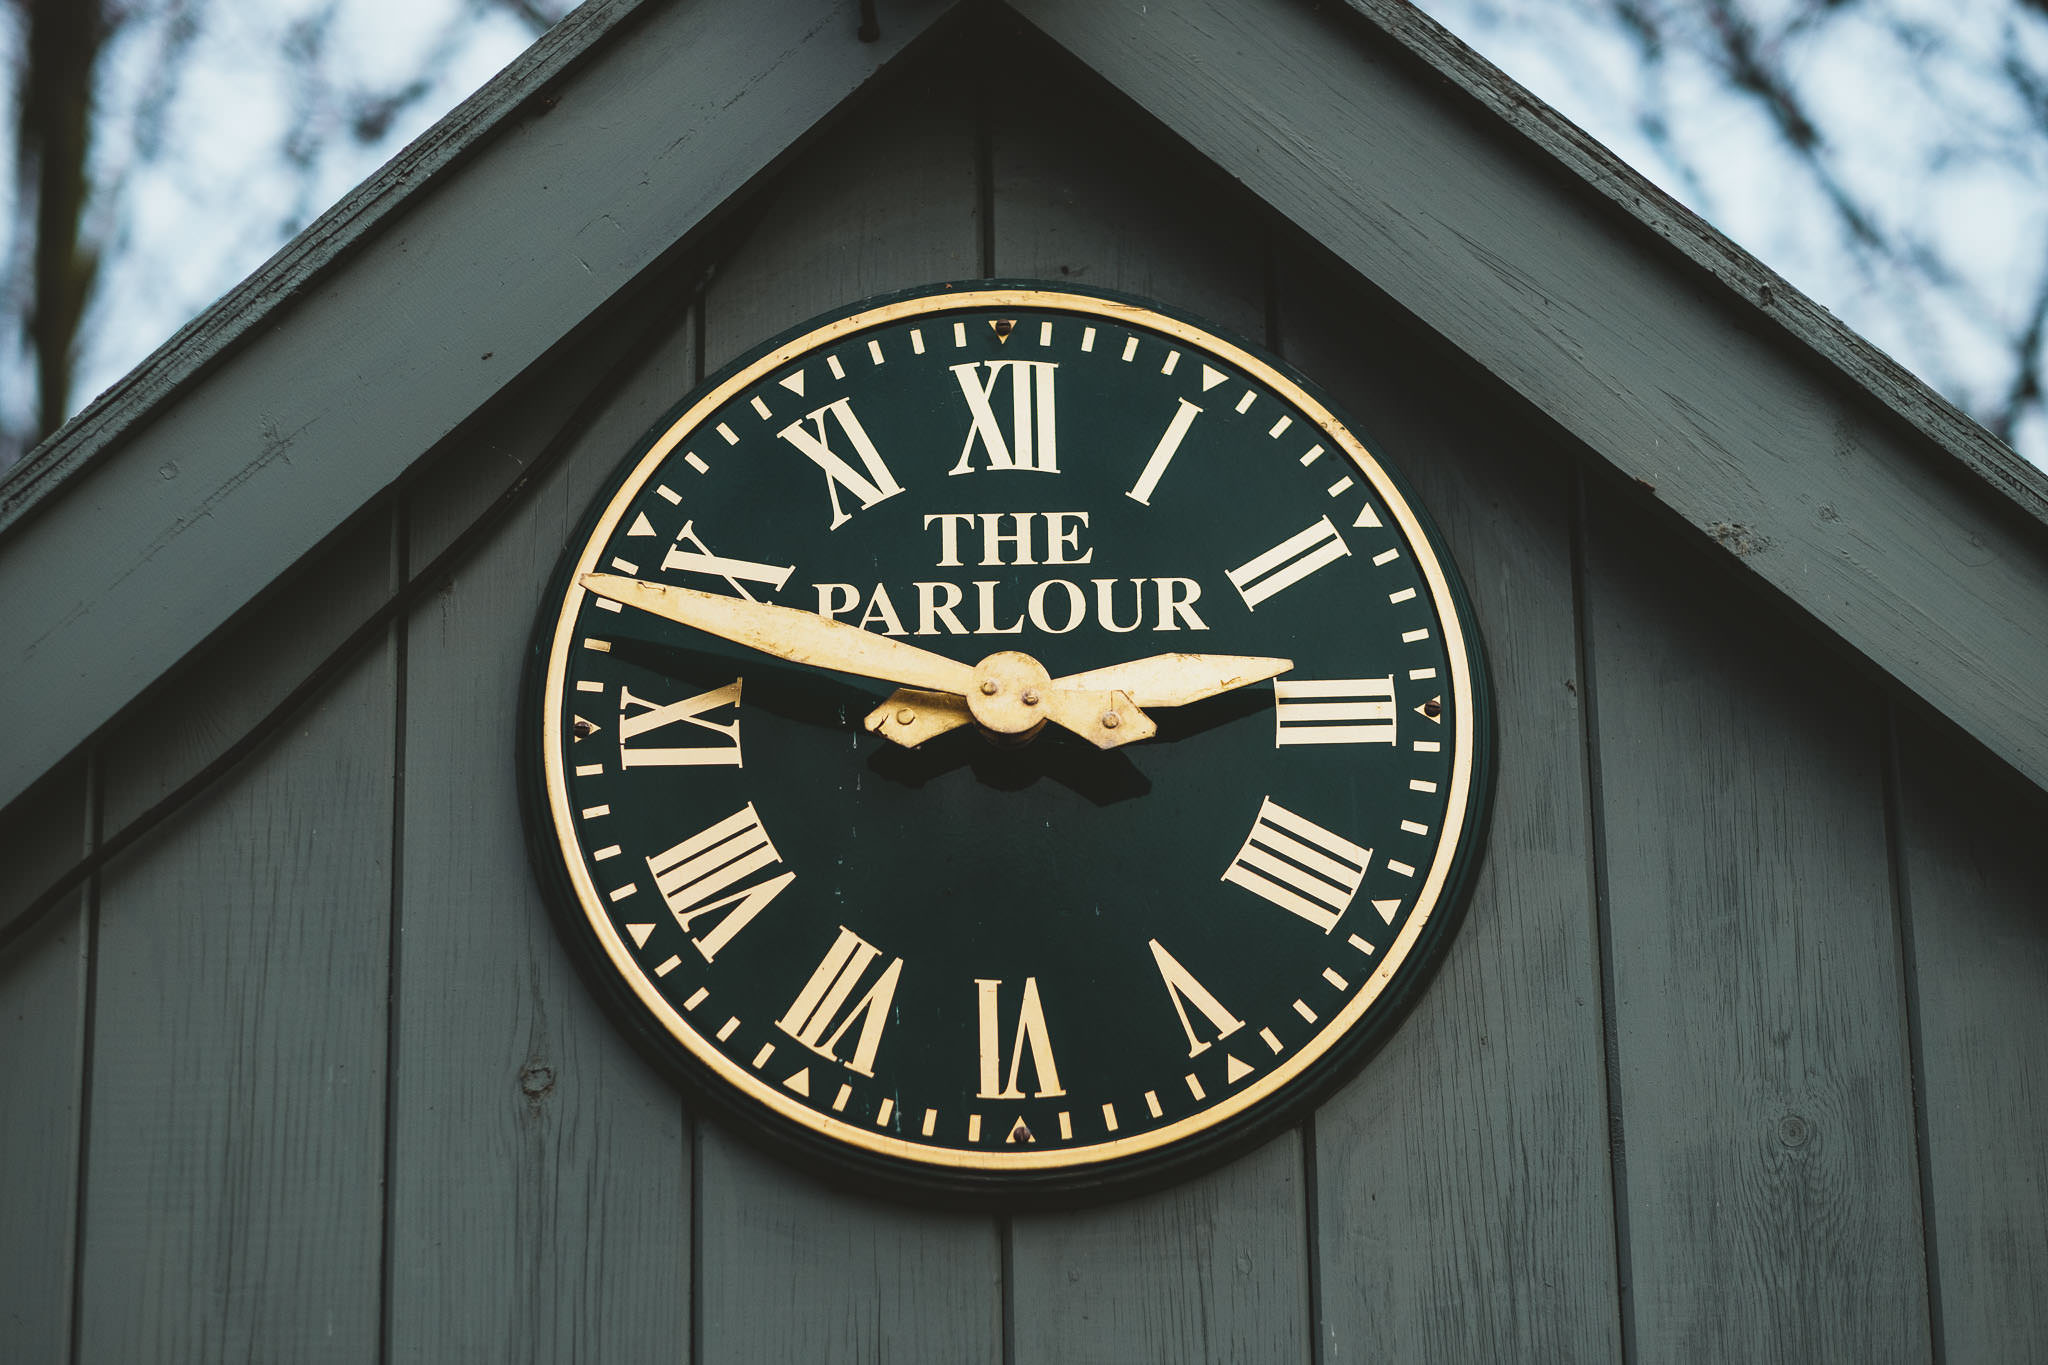 Close up of the clock at The Parlour at Blagdon Newcastle